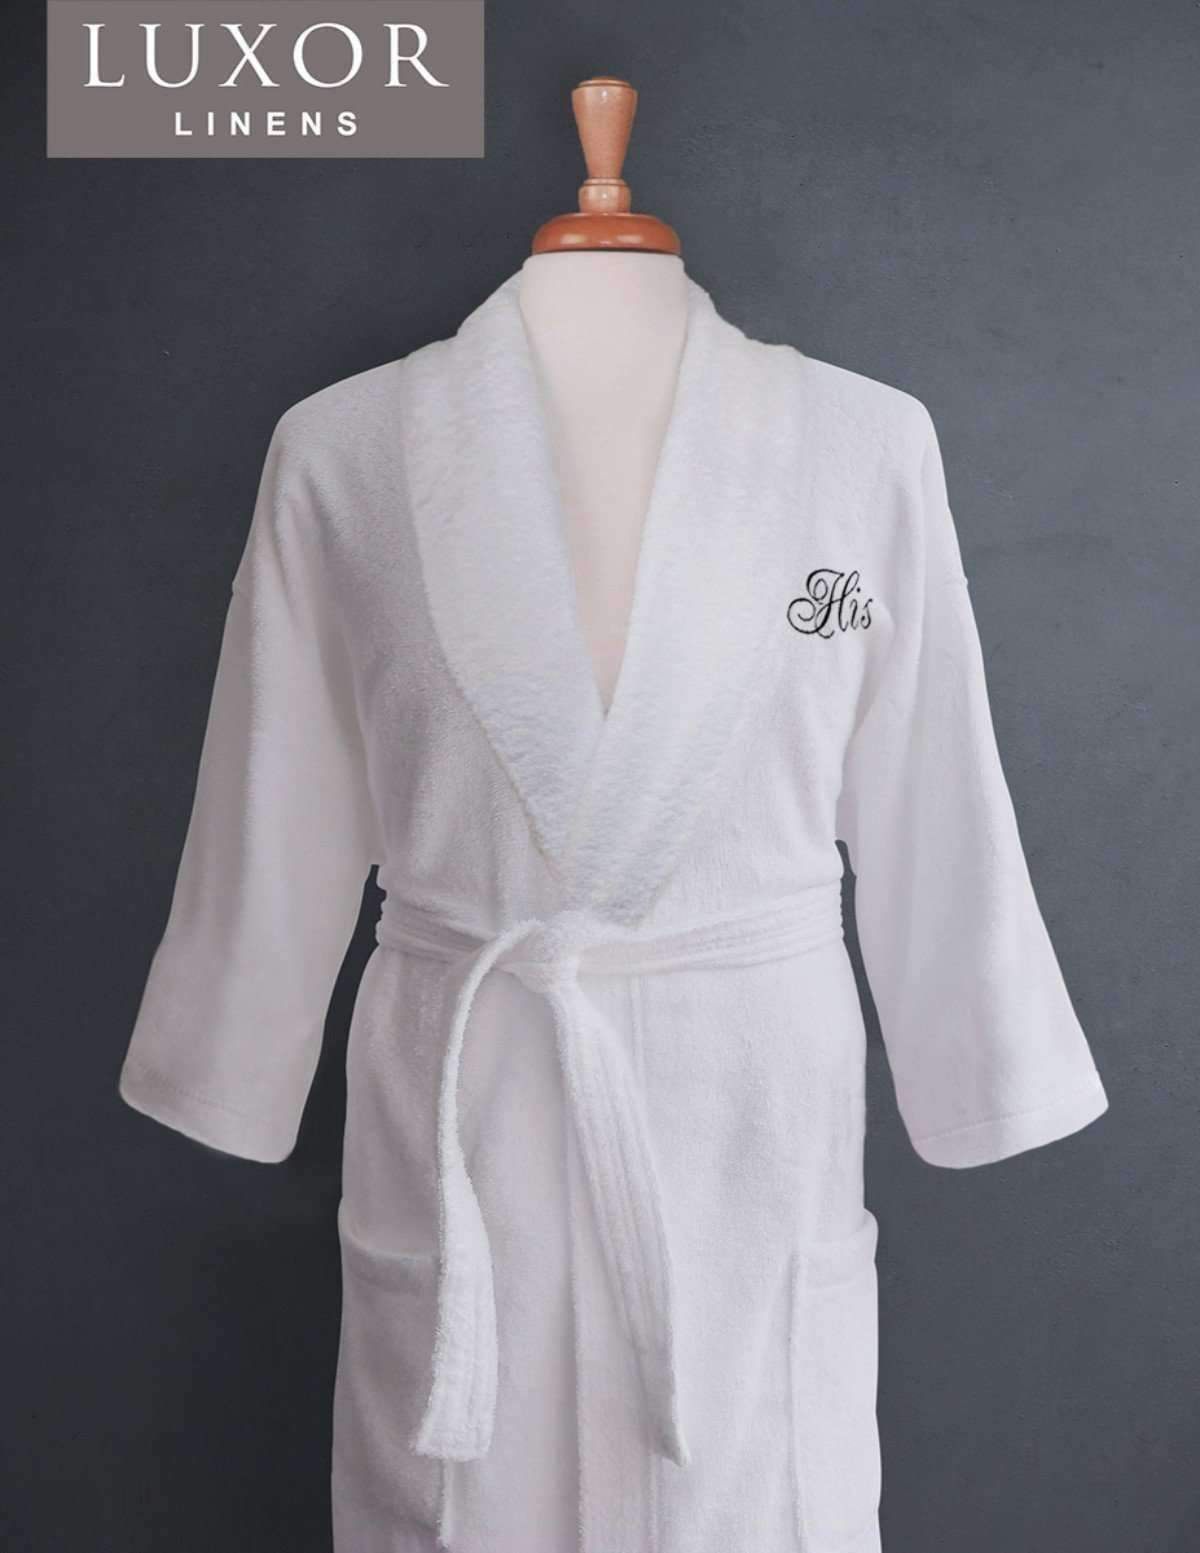 Lakeview Signature Egyptian Cotton Terry Spa Robes - Fun Gifts